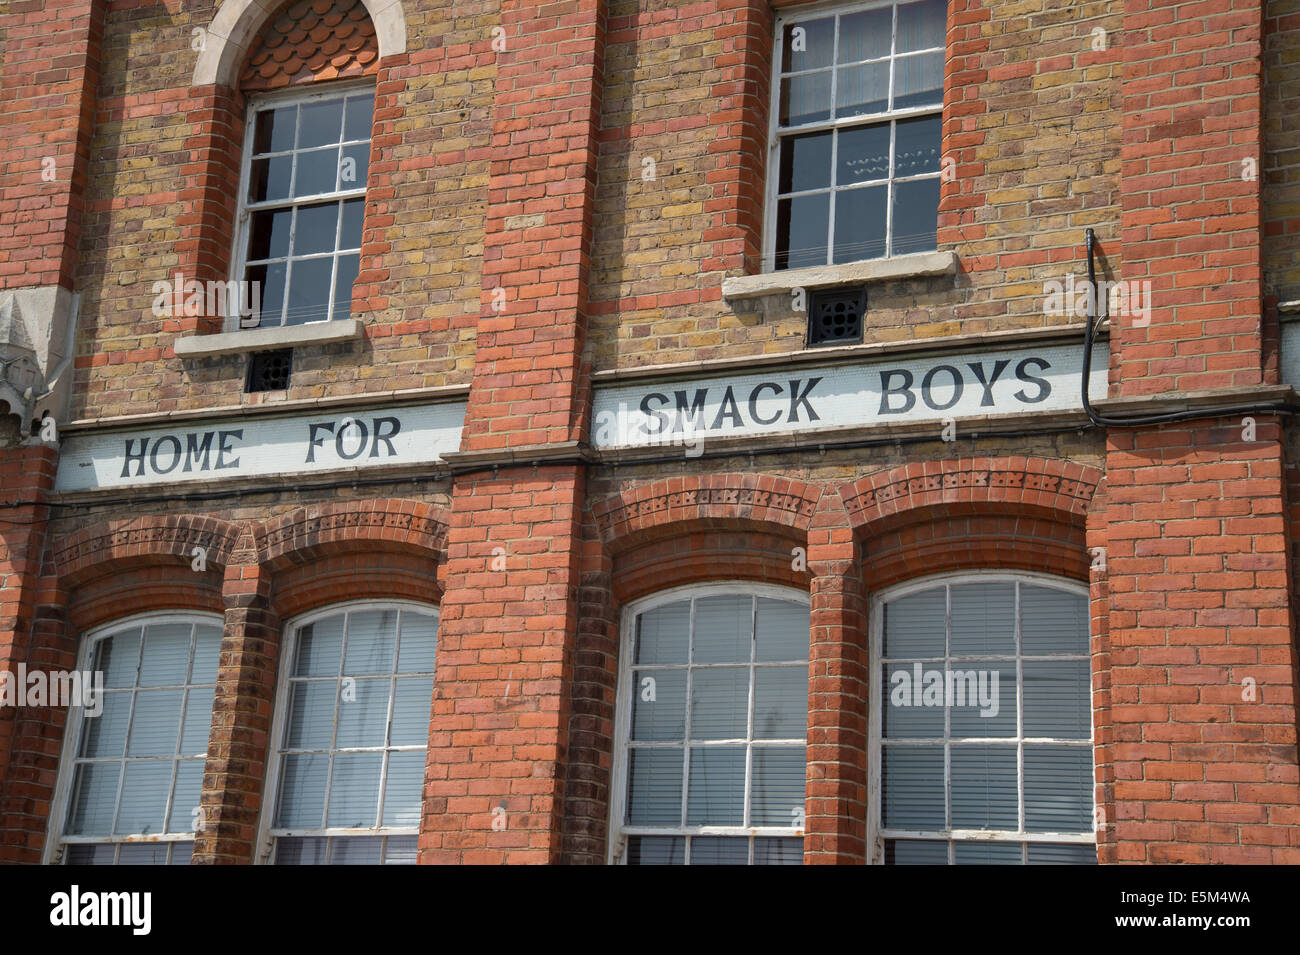 Ramsgate, Kent. Restored red brick building with sign 'Home for Smack Boys' - Stock Image